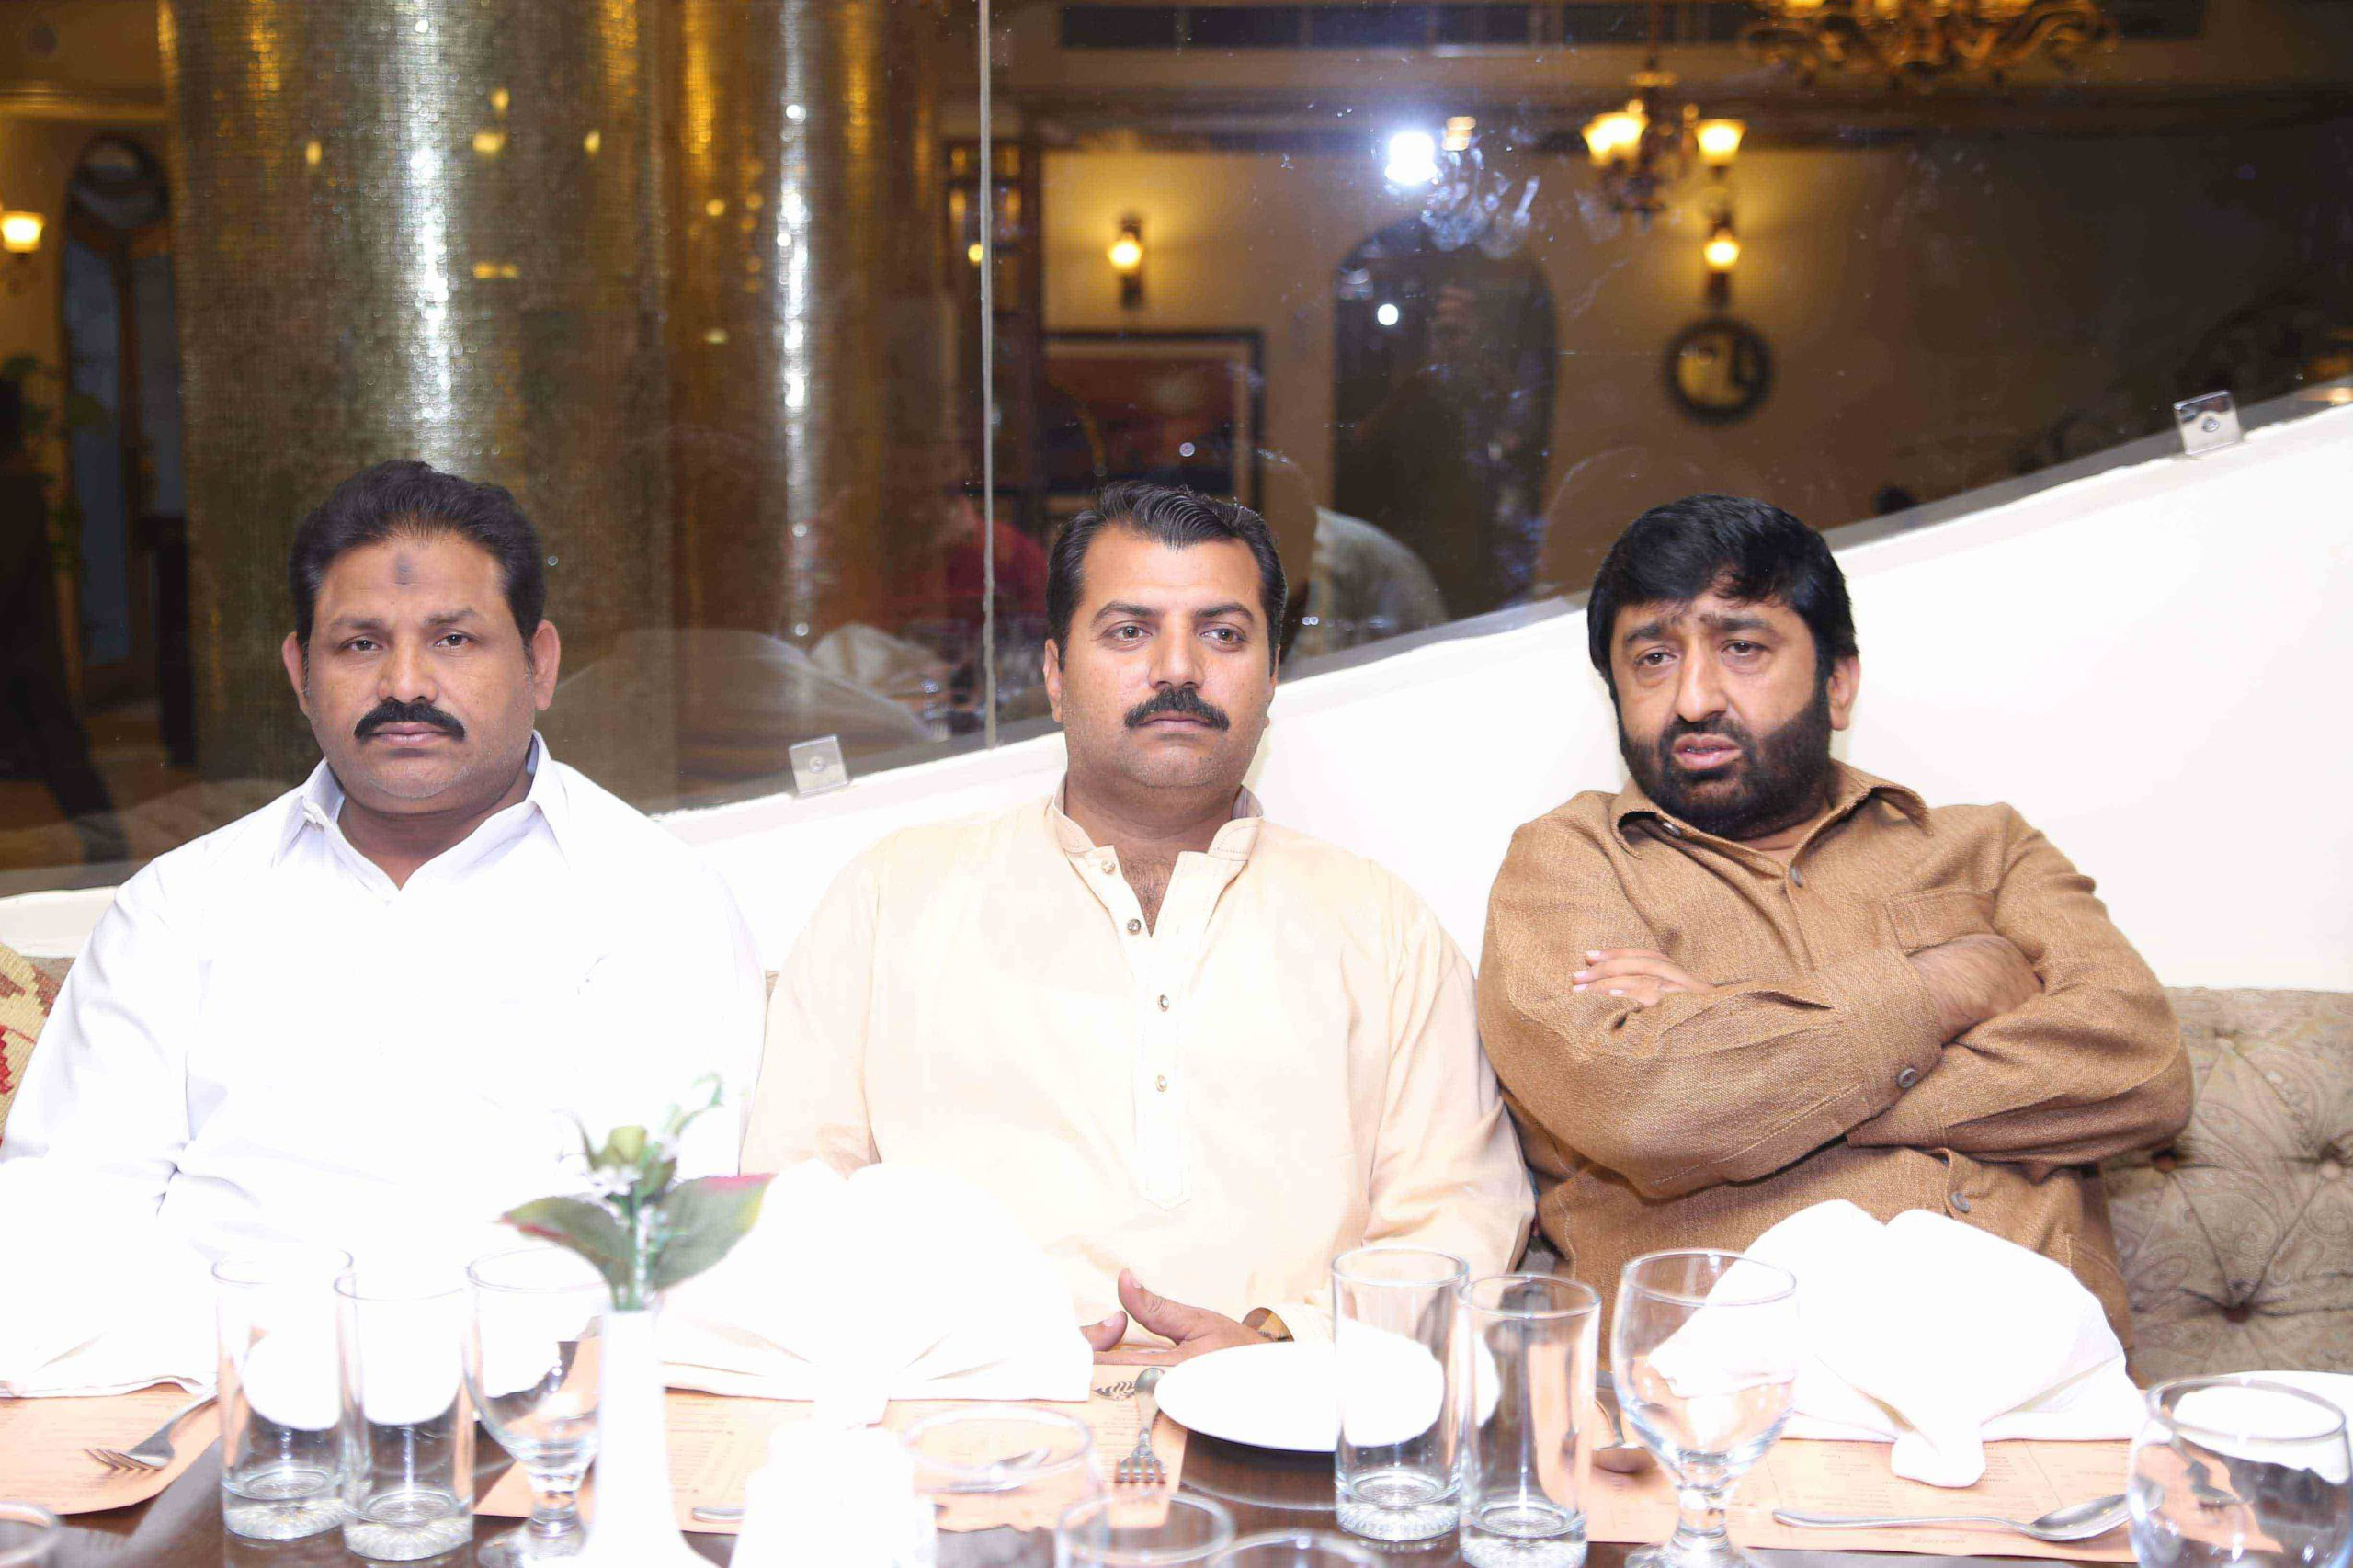 STAFF_ANNUAL_DINNER_&_IFTAR_PARTTY_28